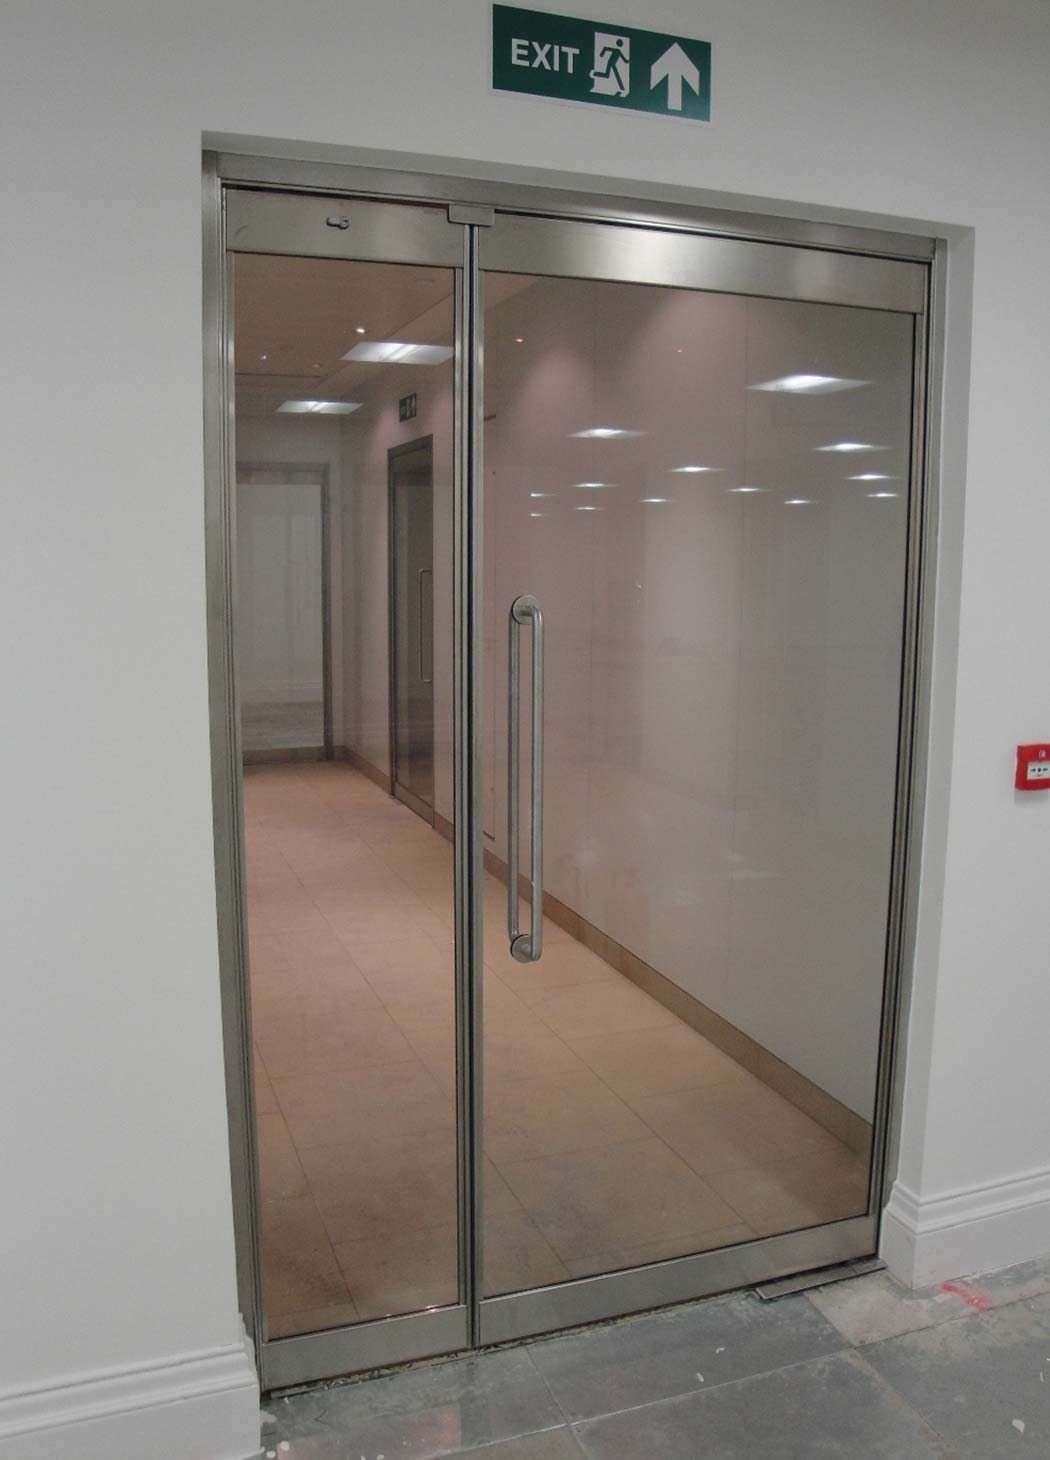 Fire rated glass glasstec systems - What is a fire rated door ...